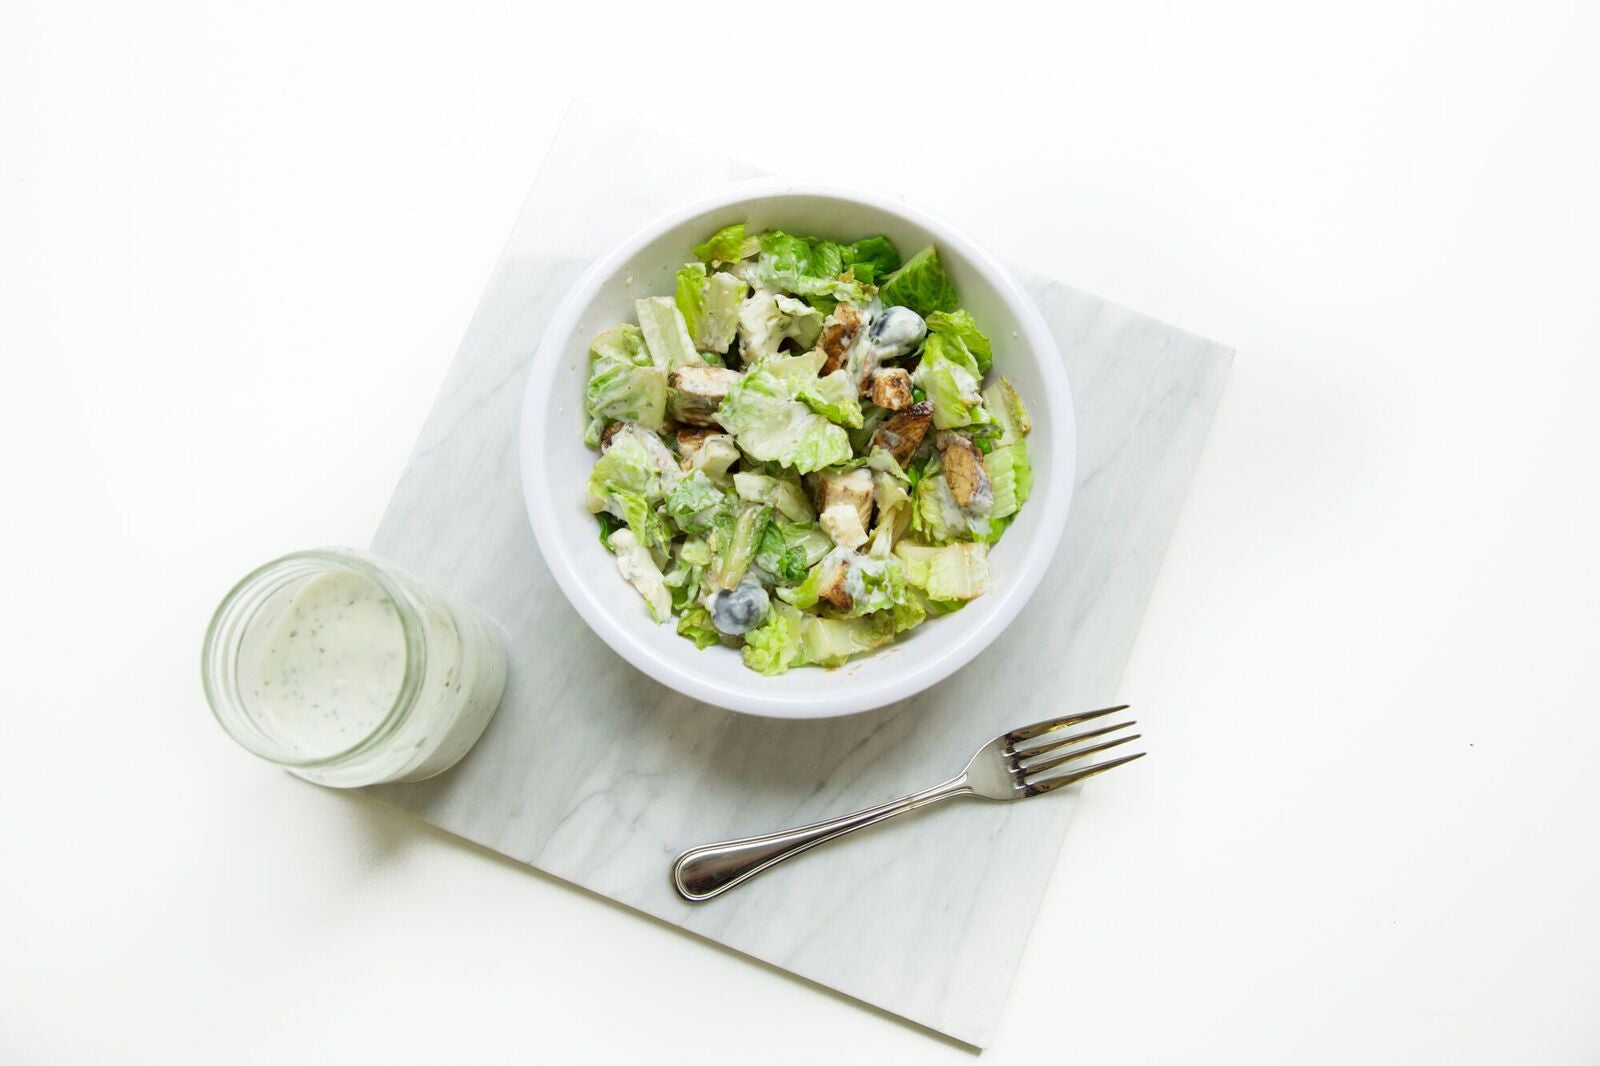 Lettuce Celebrate This Weekend with Buttermilk Dressing